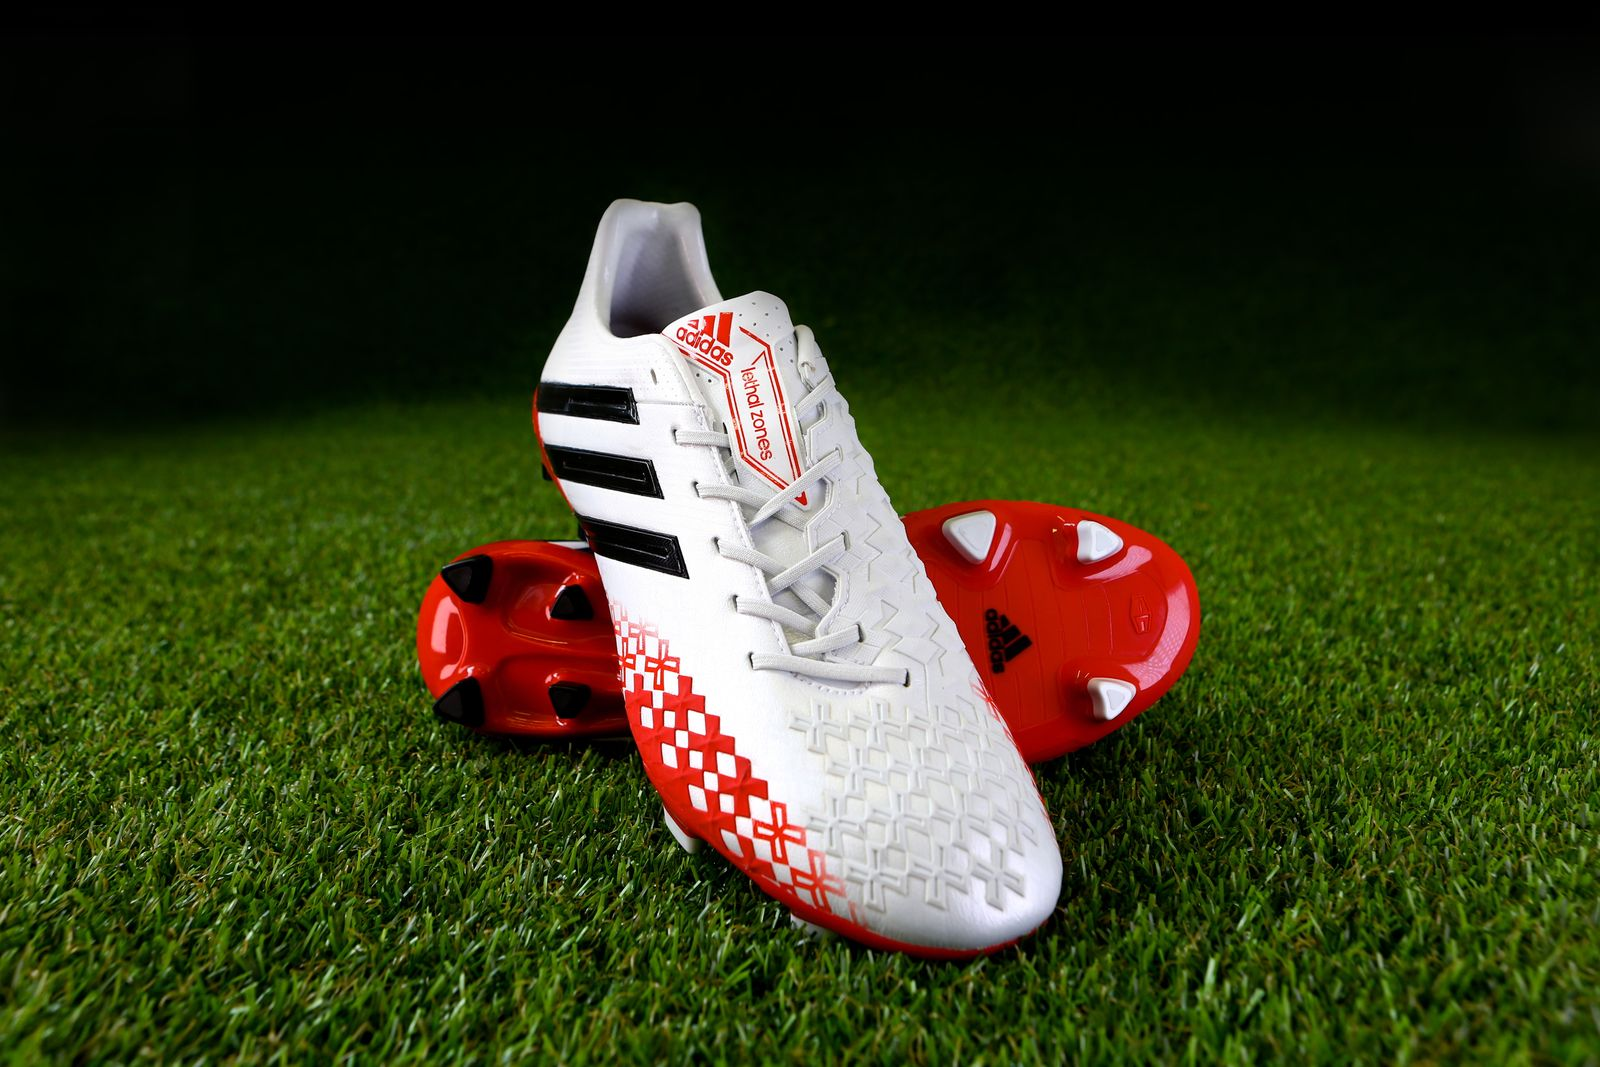 adidas Predator White & Red 6